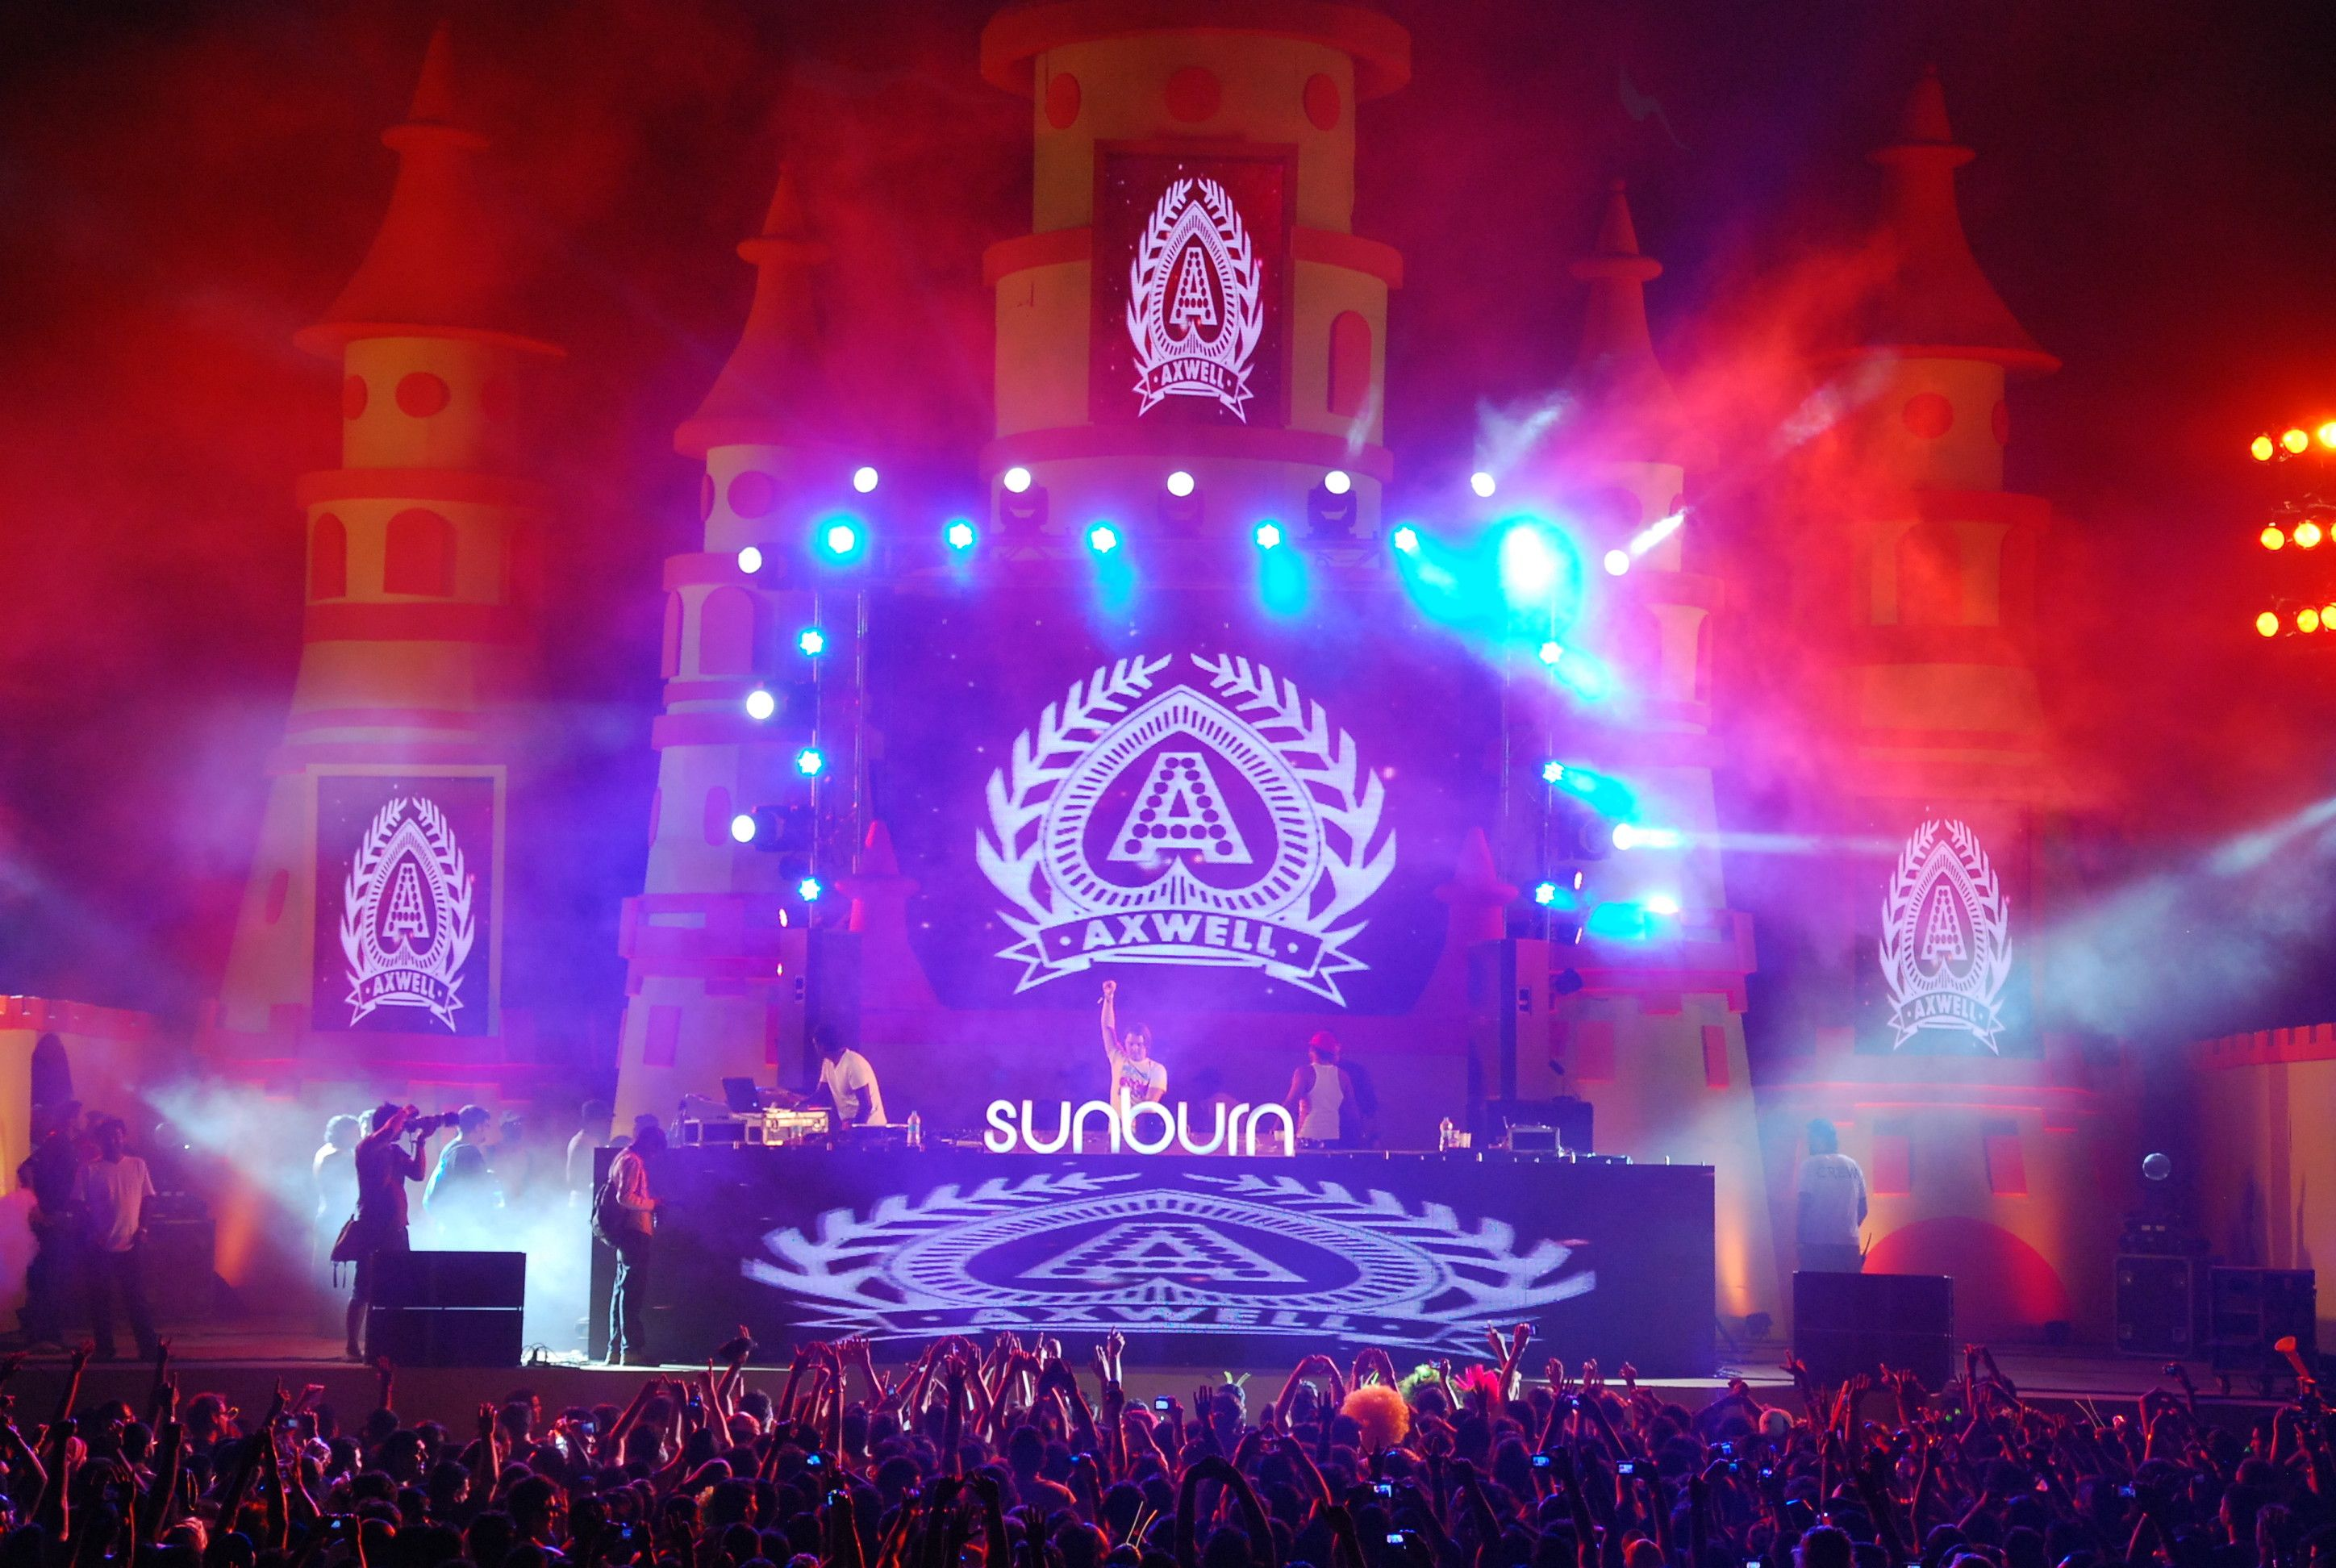 81 Edm Festival Wallpapers On Wallpaperplay With Images Music